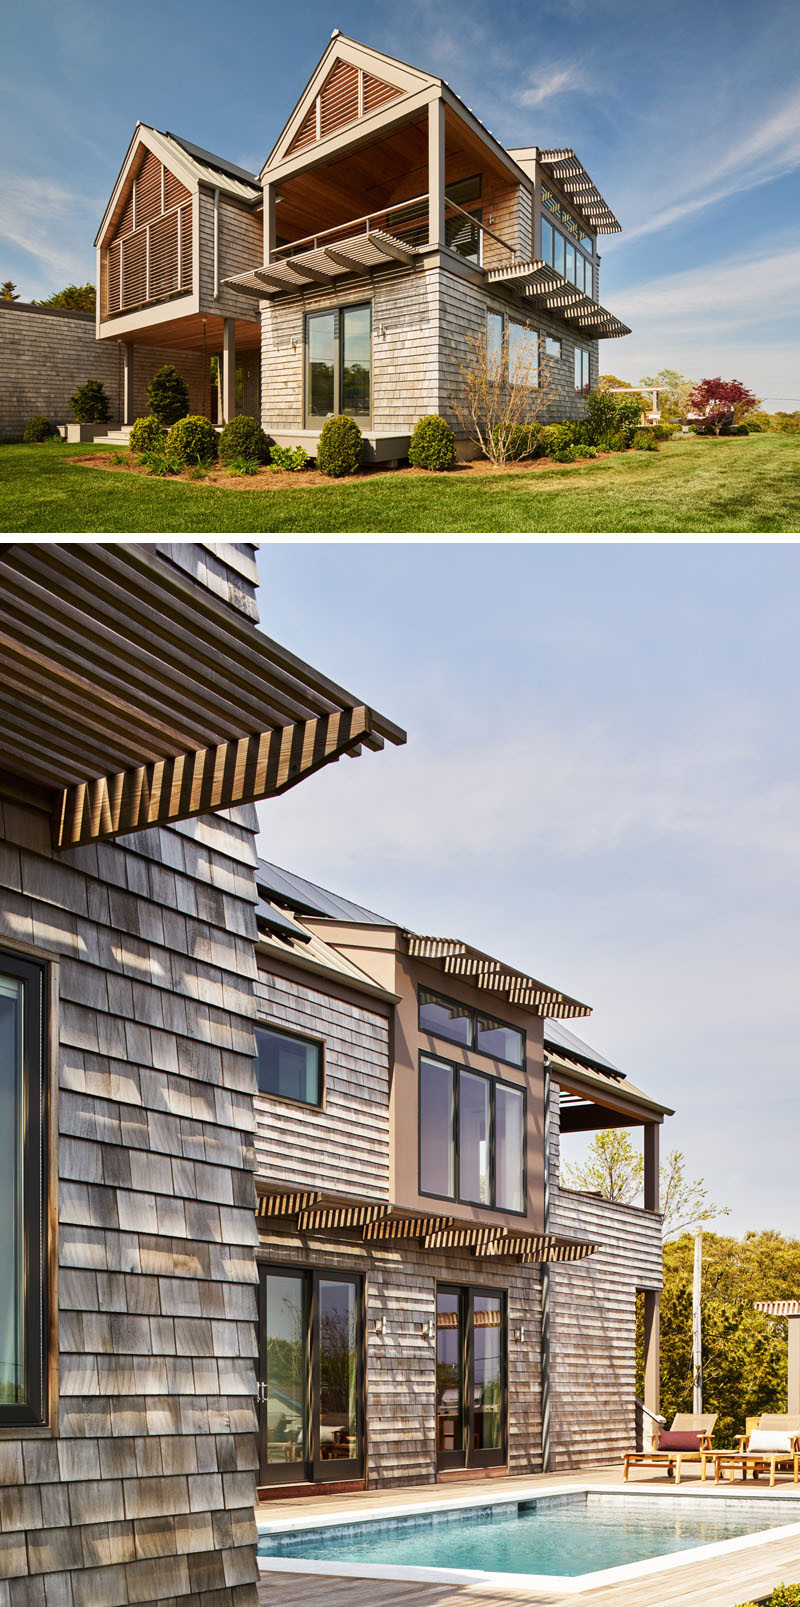 13 Examples Of Modern Houses With Wooden Shingles on Modern House Siding  id=42602